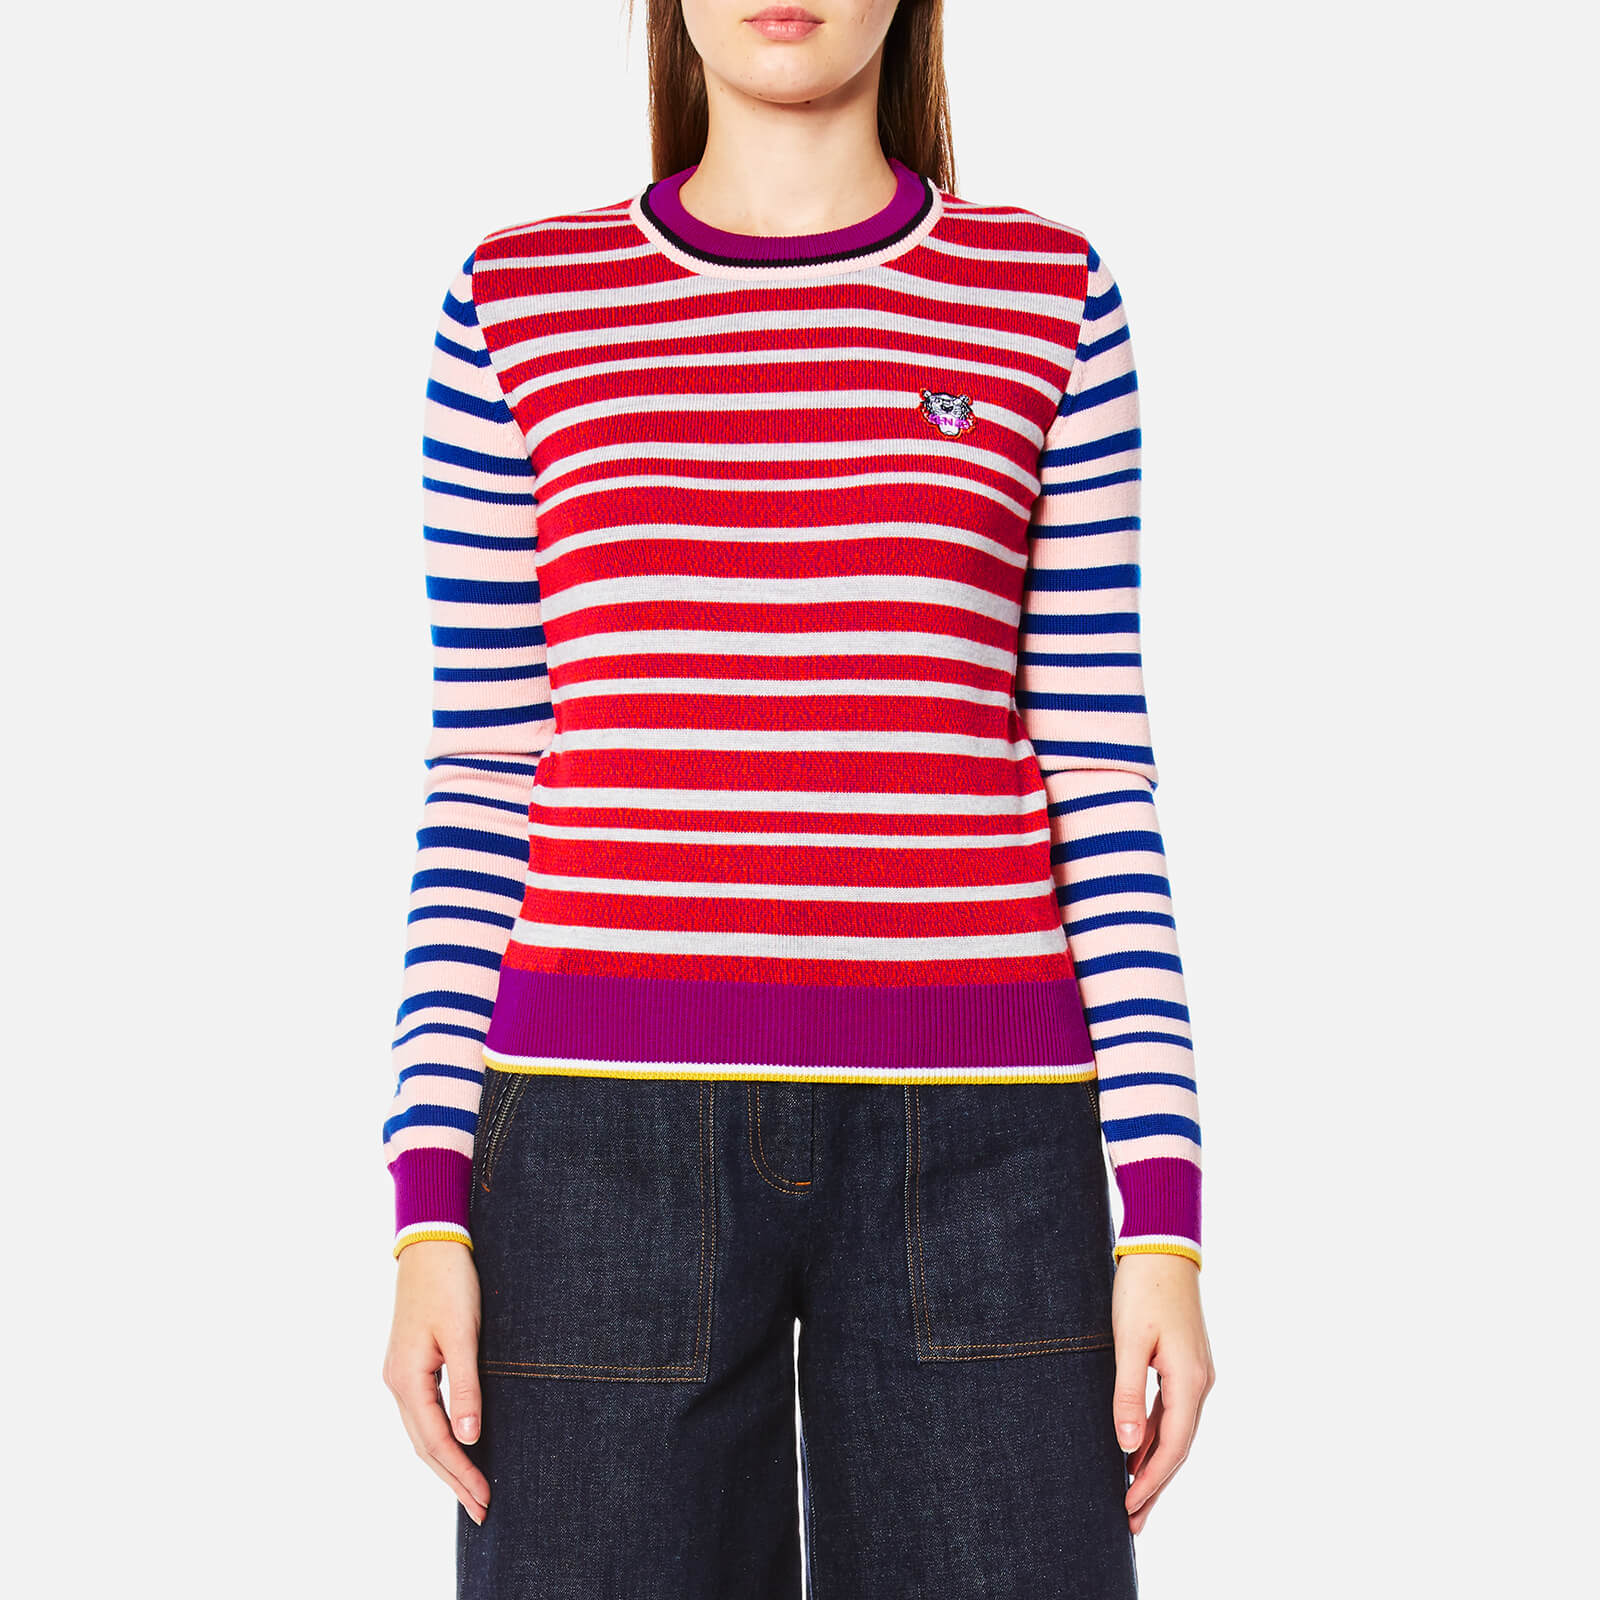 5c0f44c2 KENZO Women's Tiger Crest Wool Knitted Jumper - Multi - Free UK Delivery  over £50